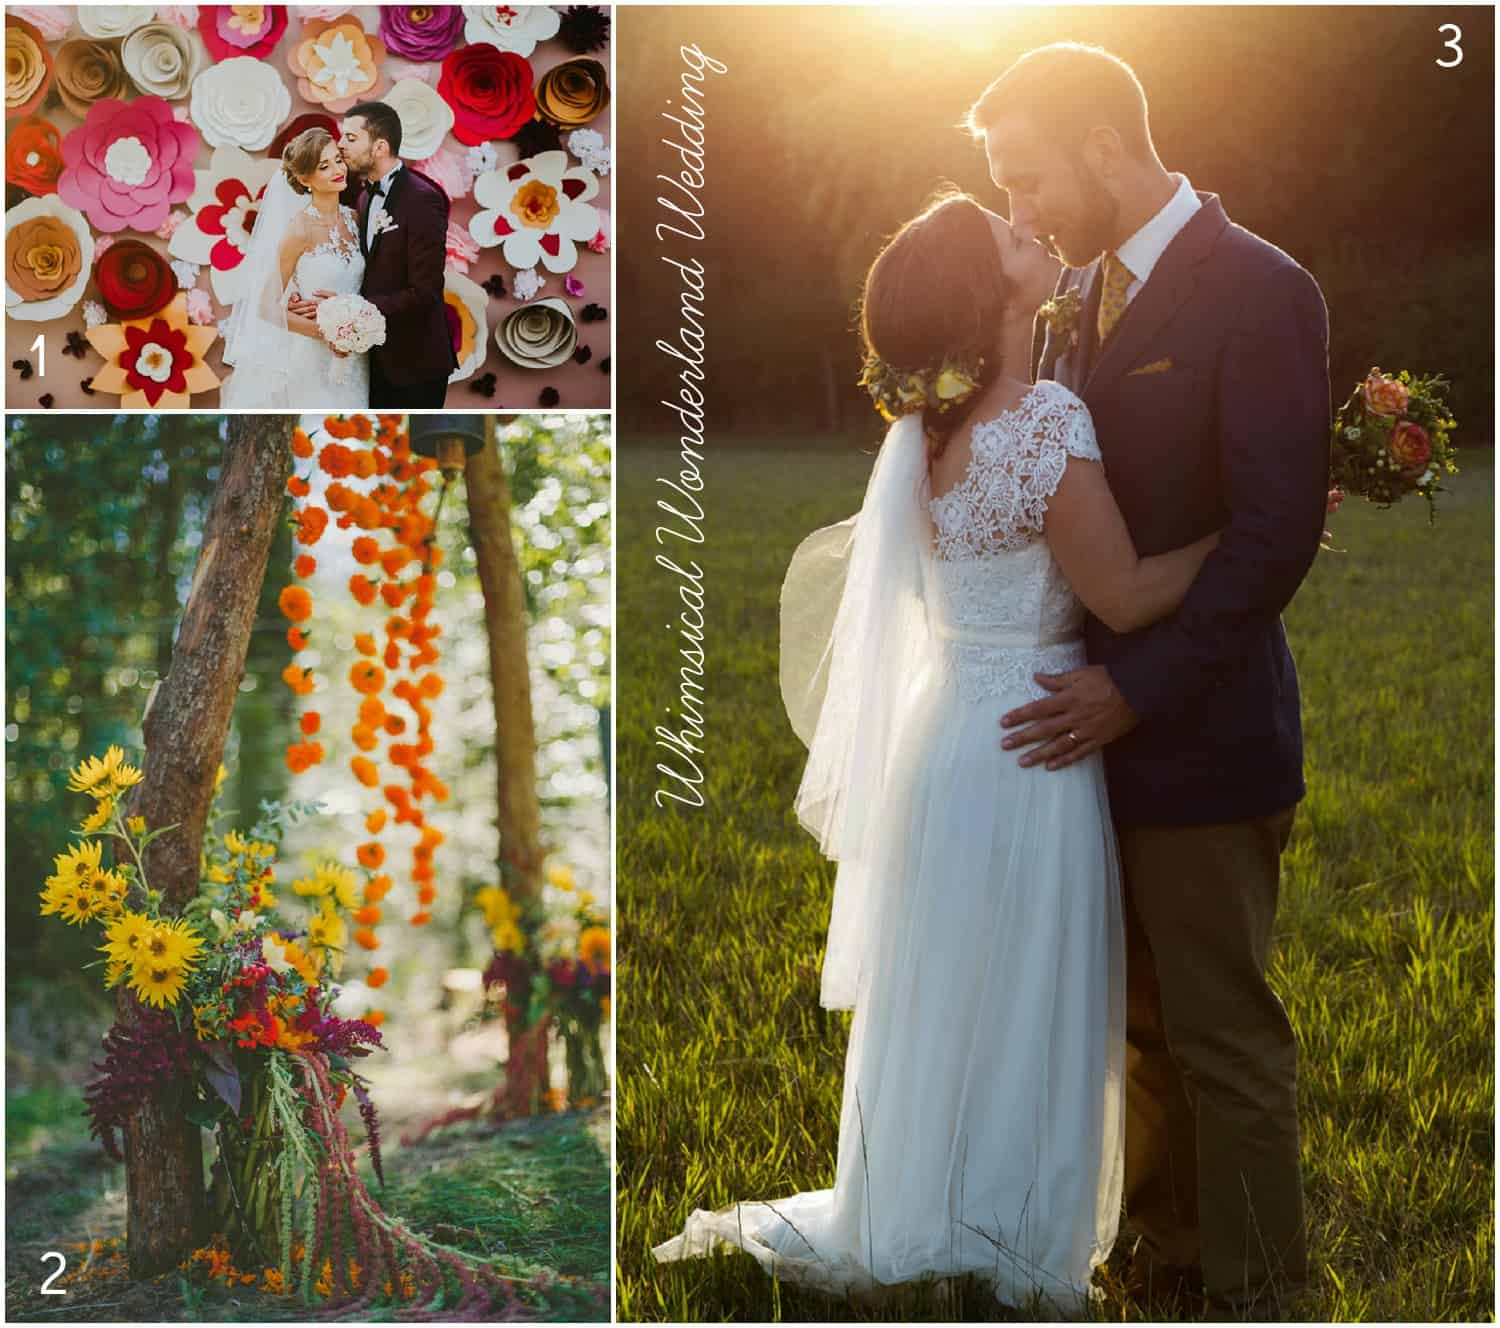 Whimsical Wonderland Weddings bridal blog